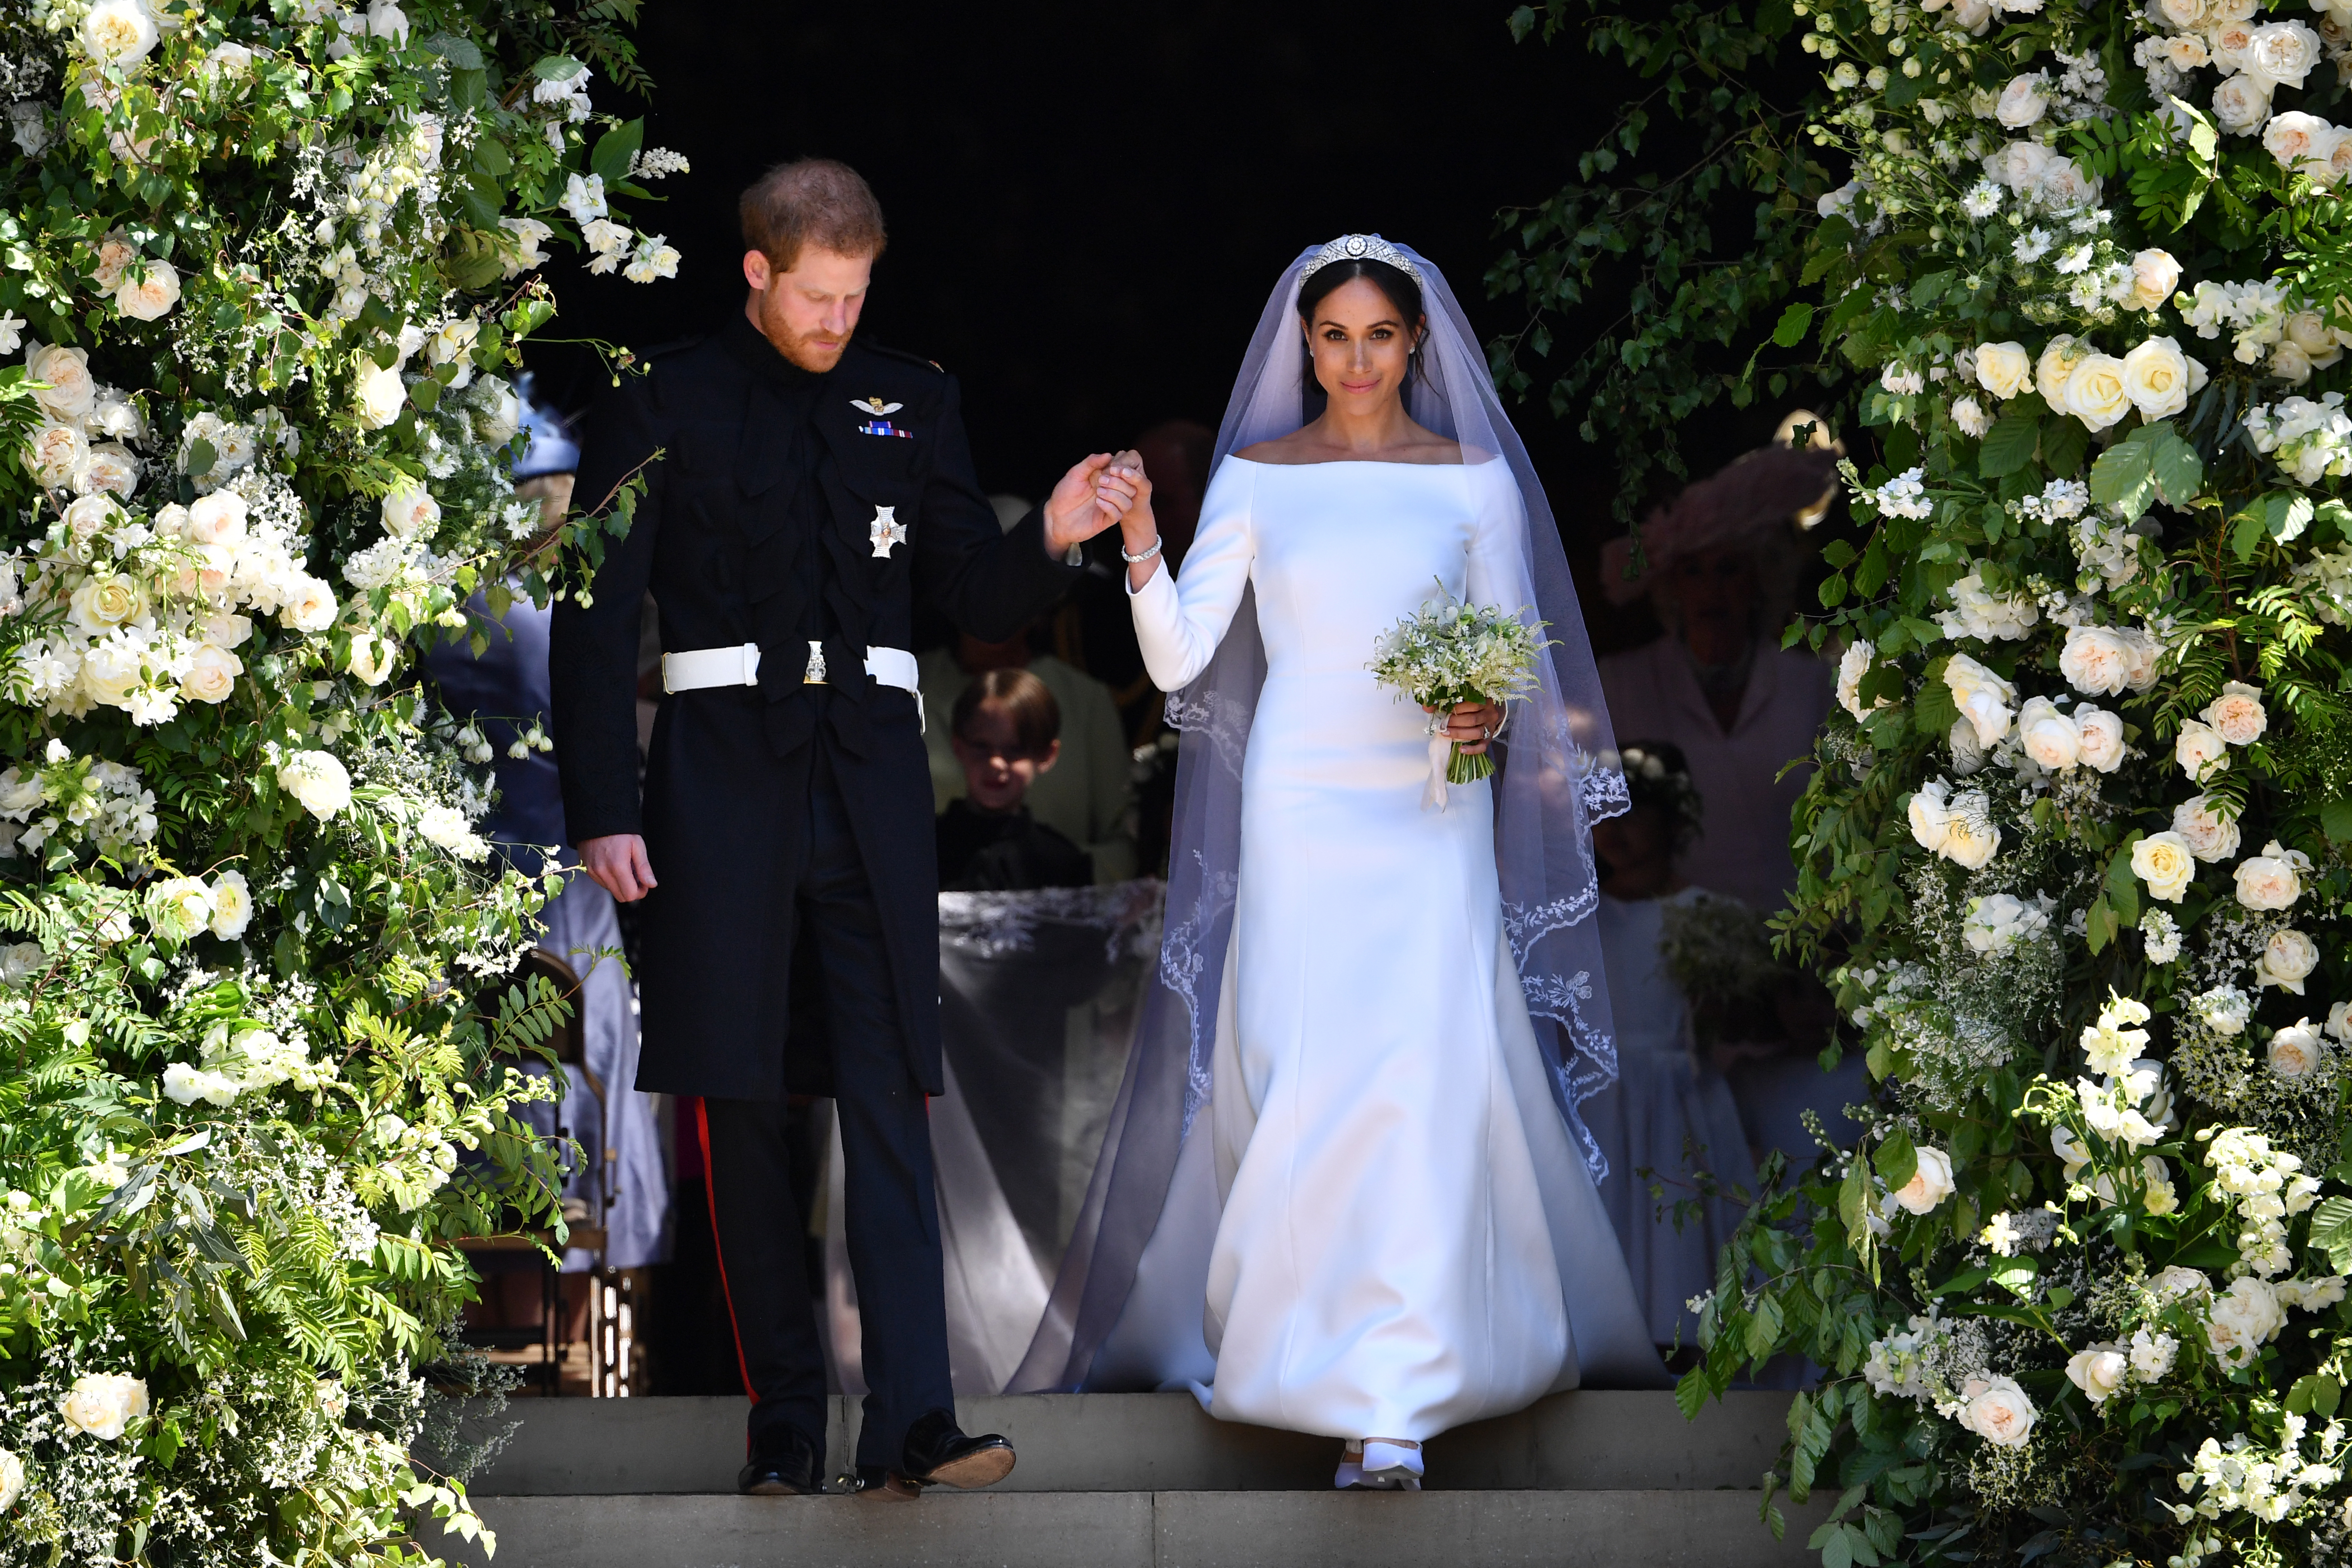 Prince Harry and Meghan Markle on their wedding day (Source: Getty Images)